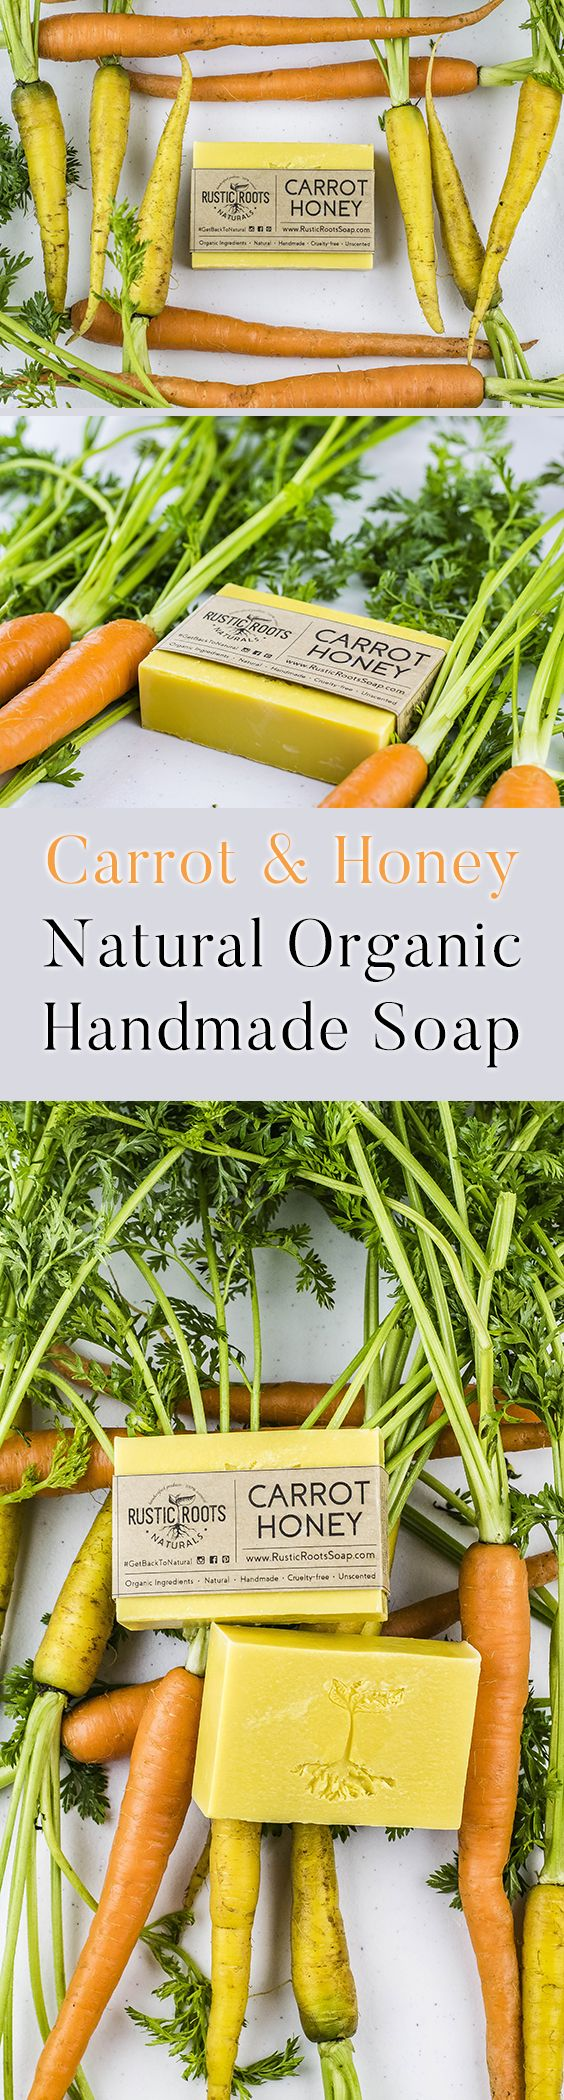 Carrot & Honey is a gentle, unscented soap that lathers well. Carrots are juiced just before soap making to preserve all nutrients. Excellent choice for those with sensitive skin or who prefer a unscented soap. Around 1/2 carrot (juice) is used for making every bar.